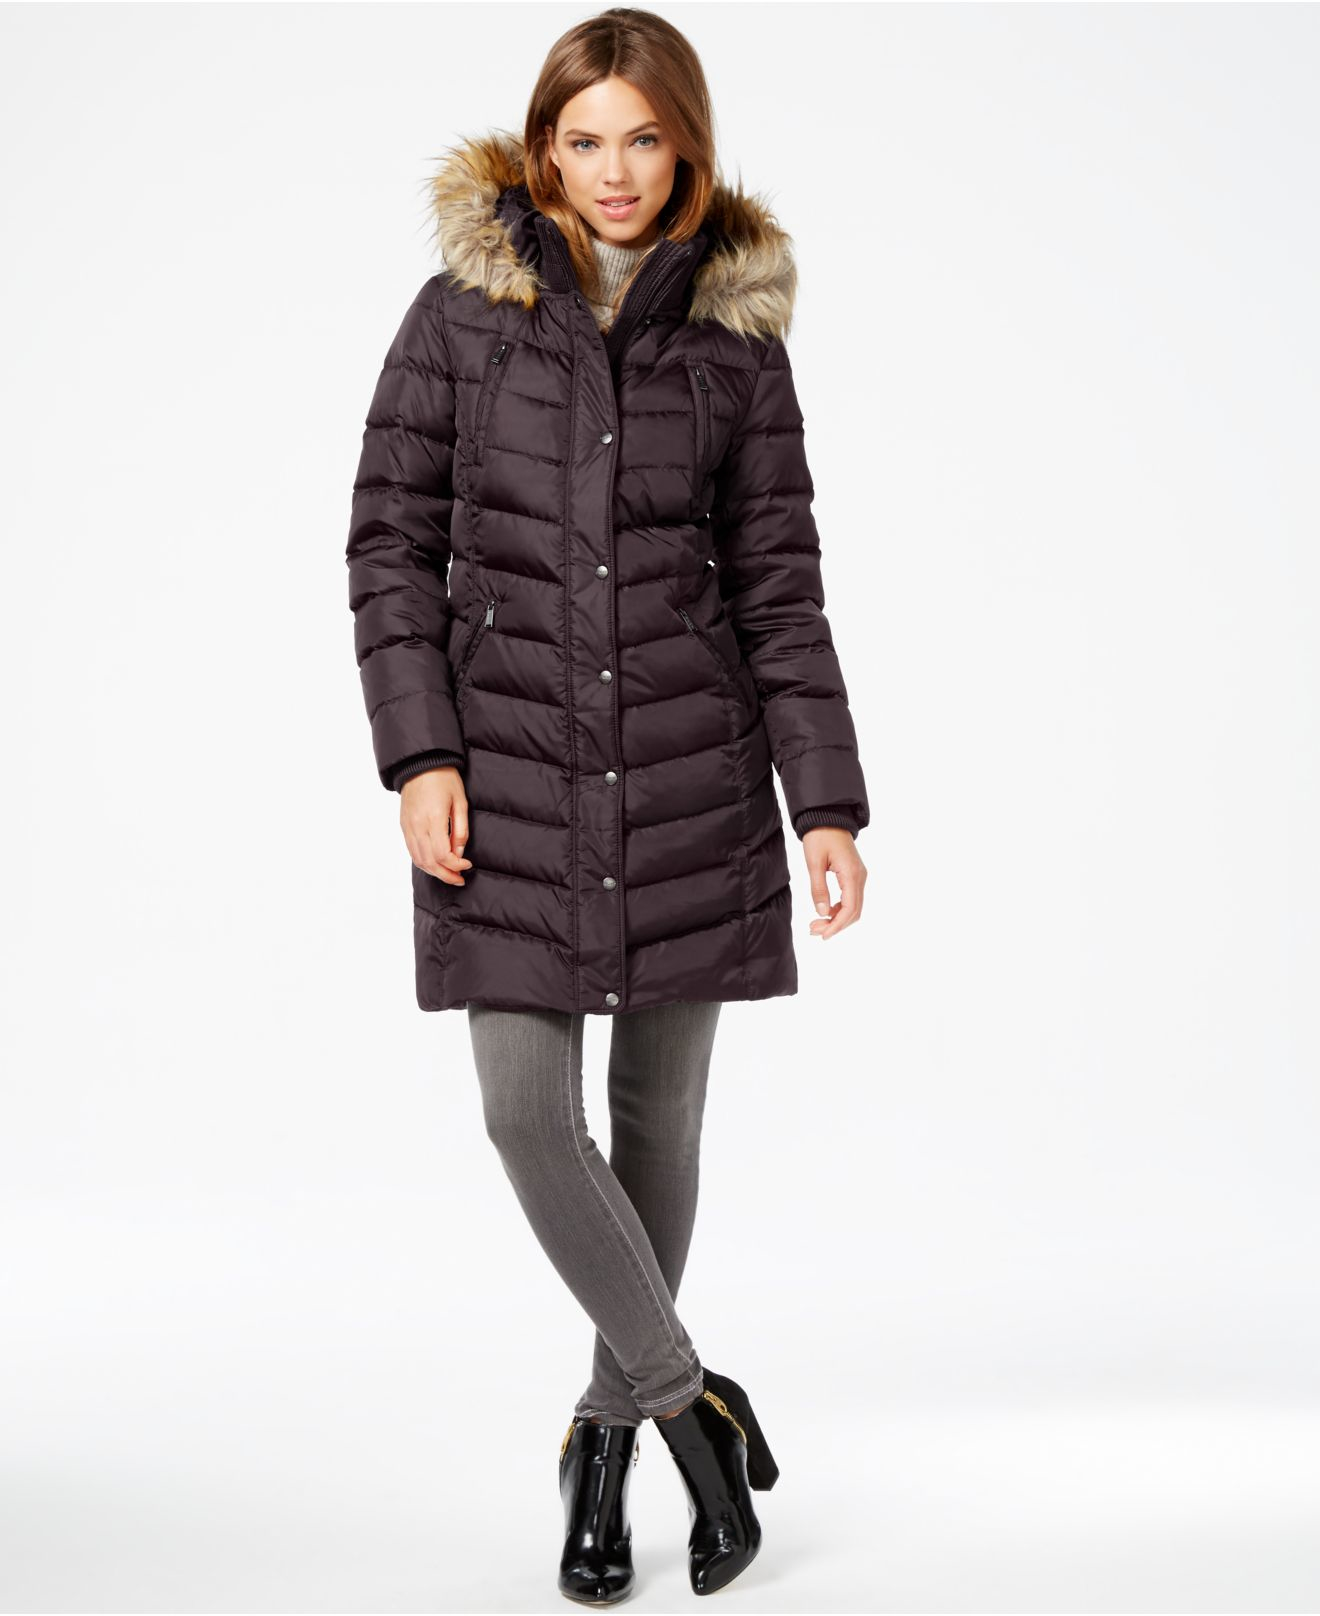 Hooded Puffer Coat With Faux Fur Trim In Gray Grey Silver ...